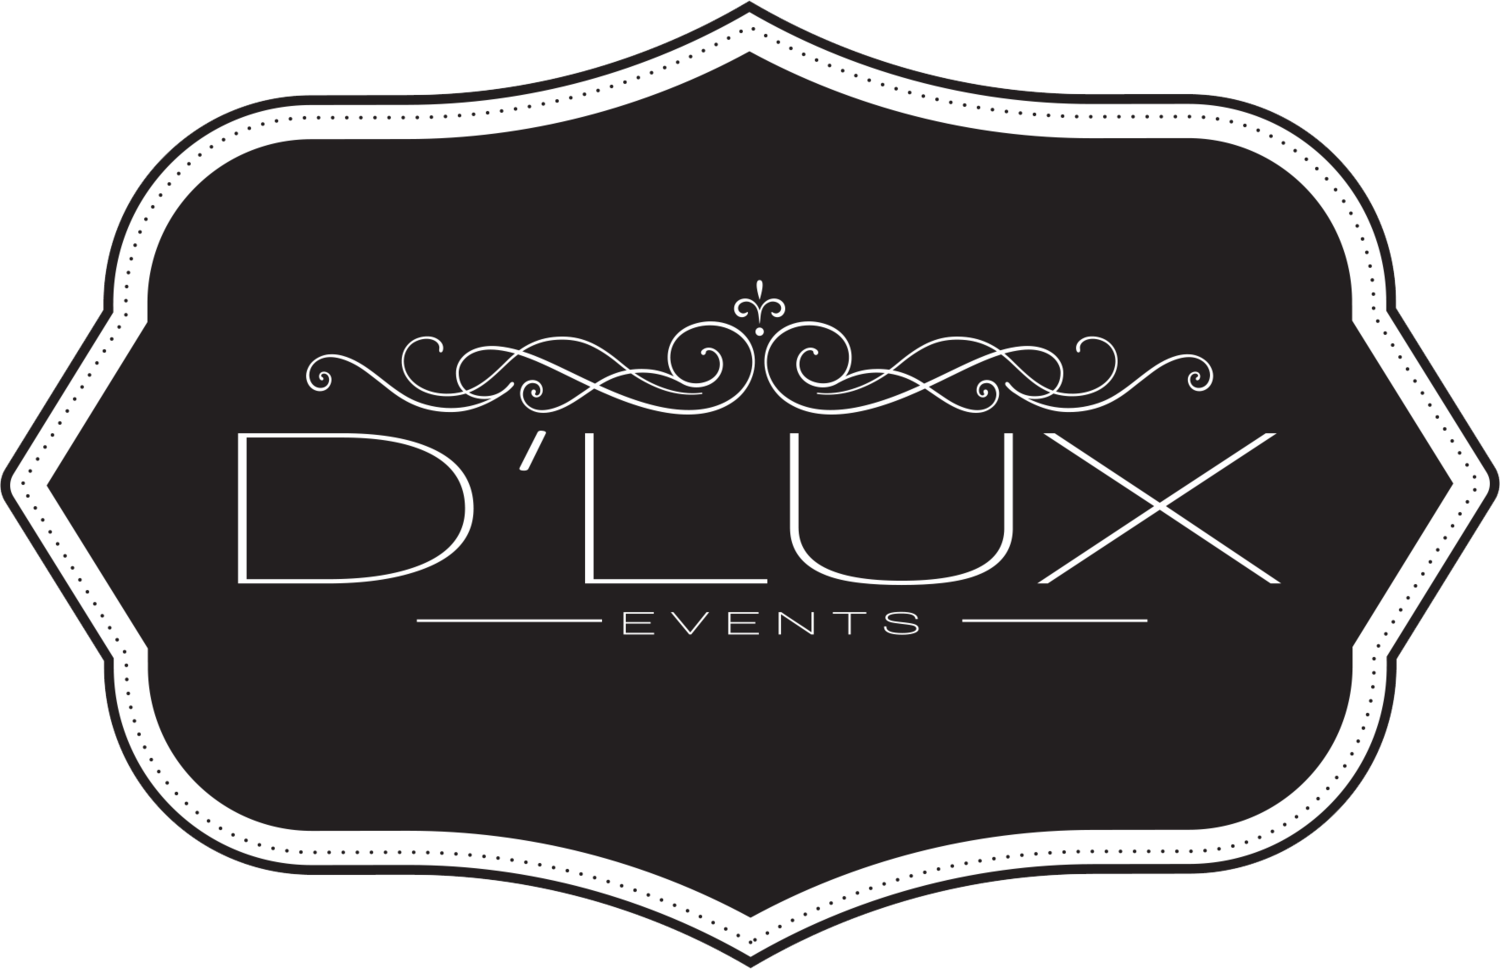 D'Lux Events